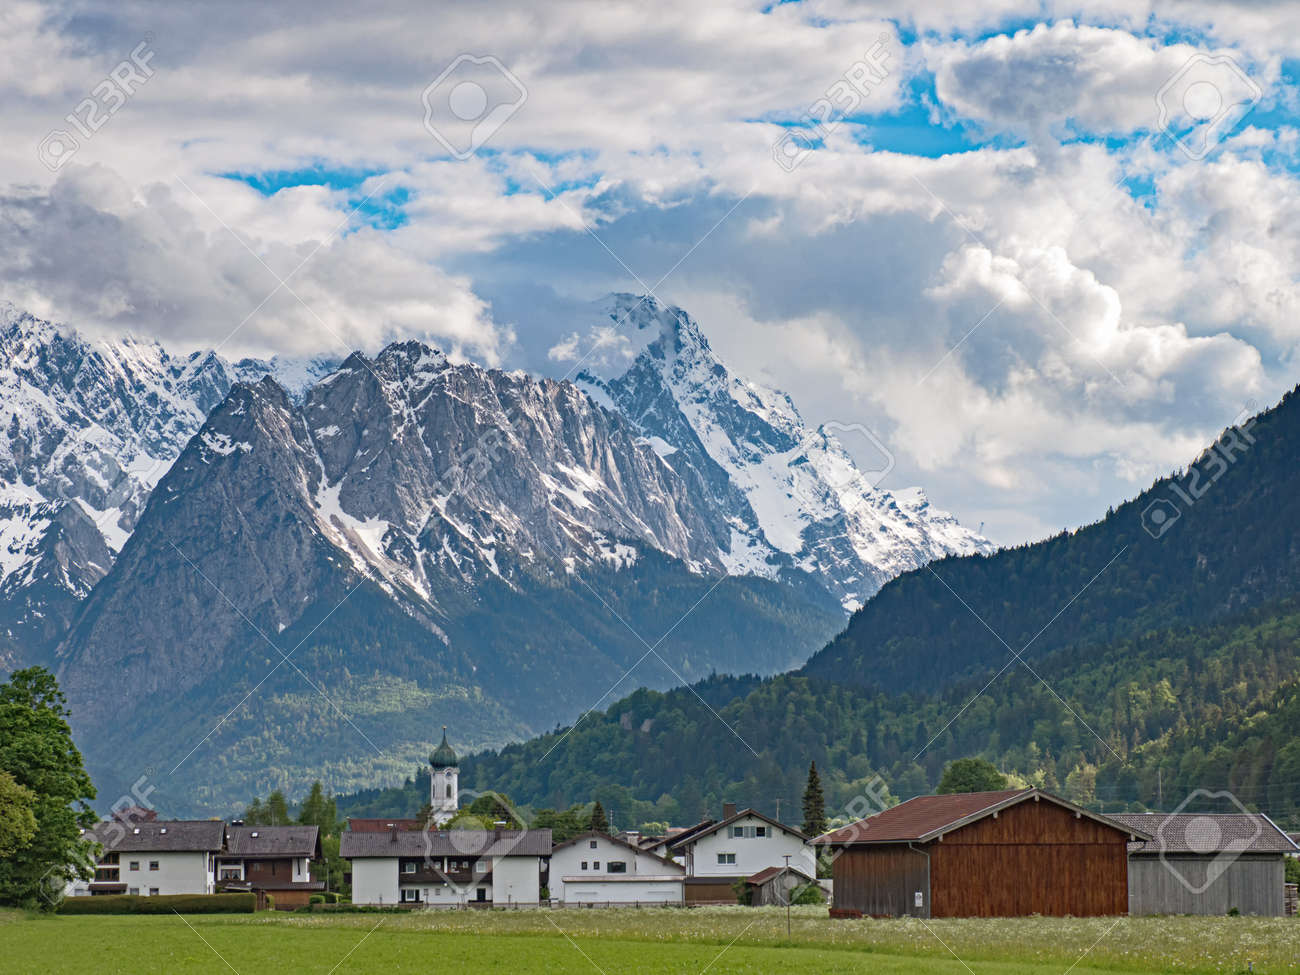 Village Farchant and the Wetterstein mountain range in the Bavarian Alps, Germany - 162918654